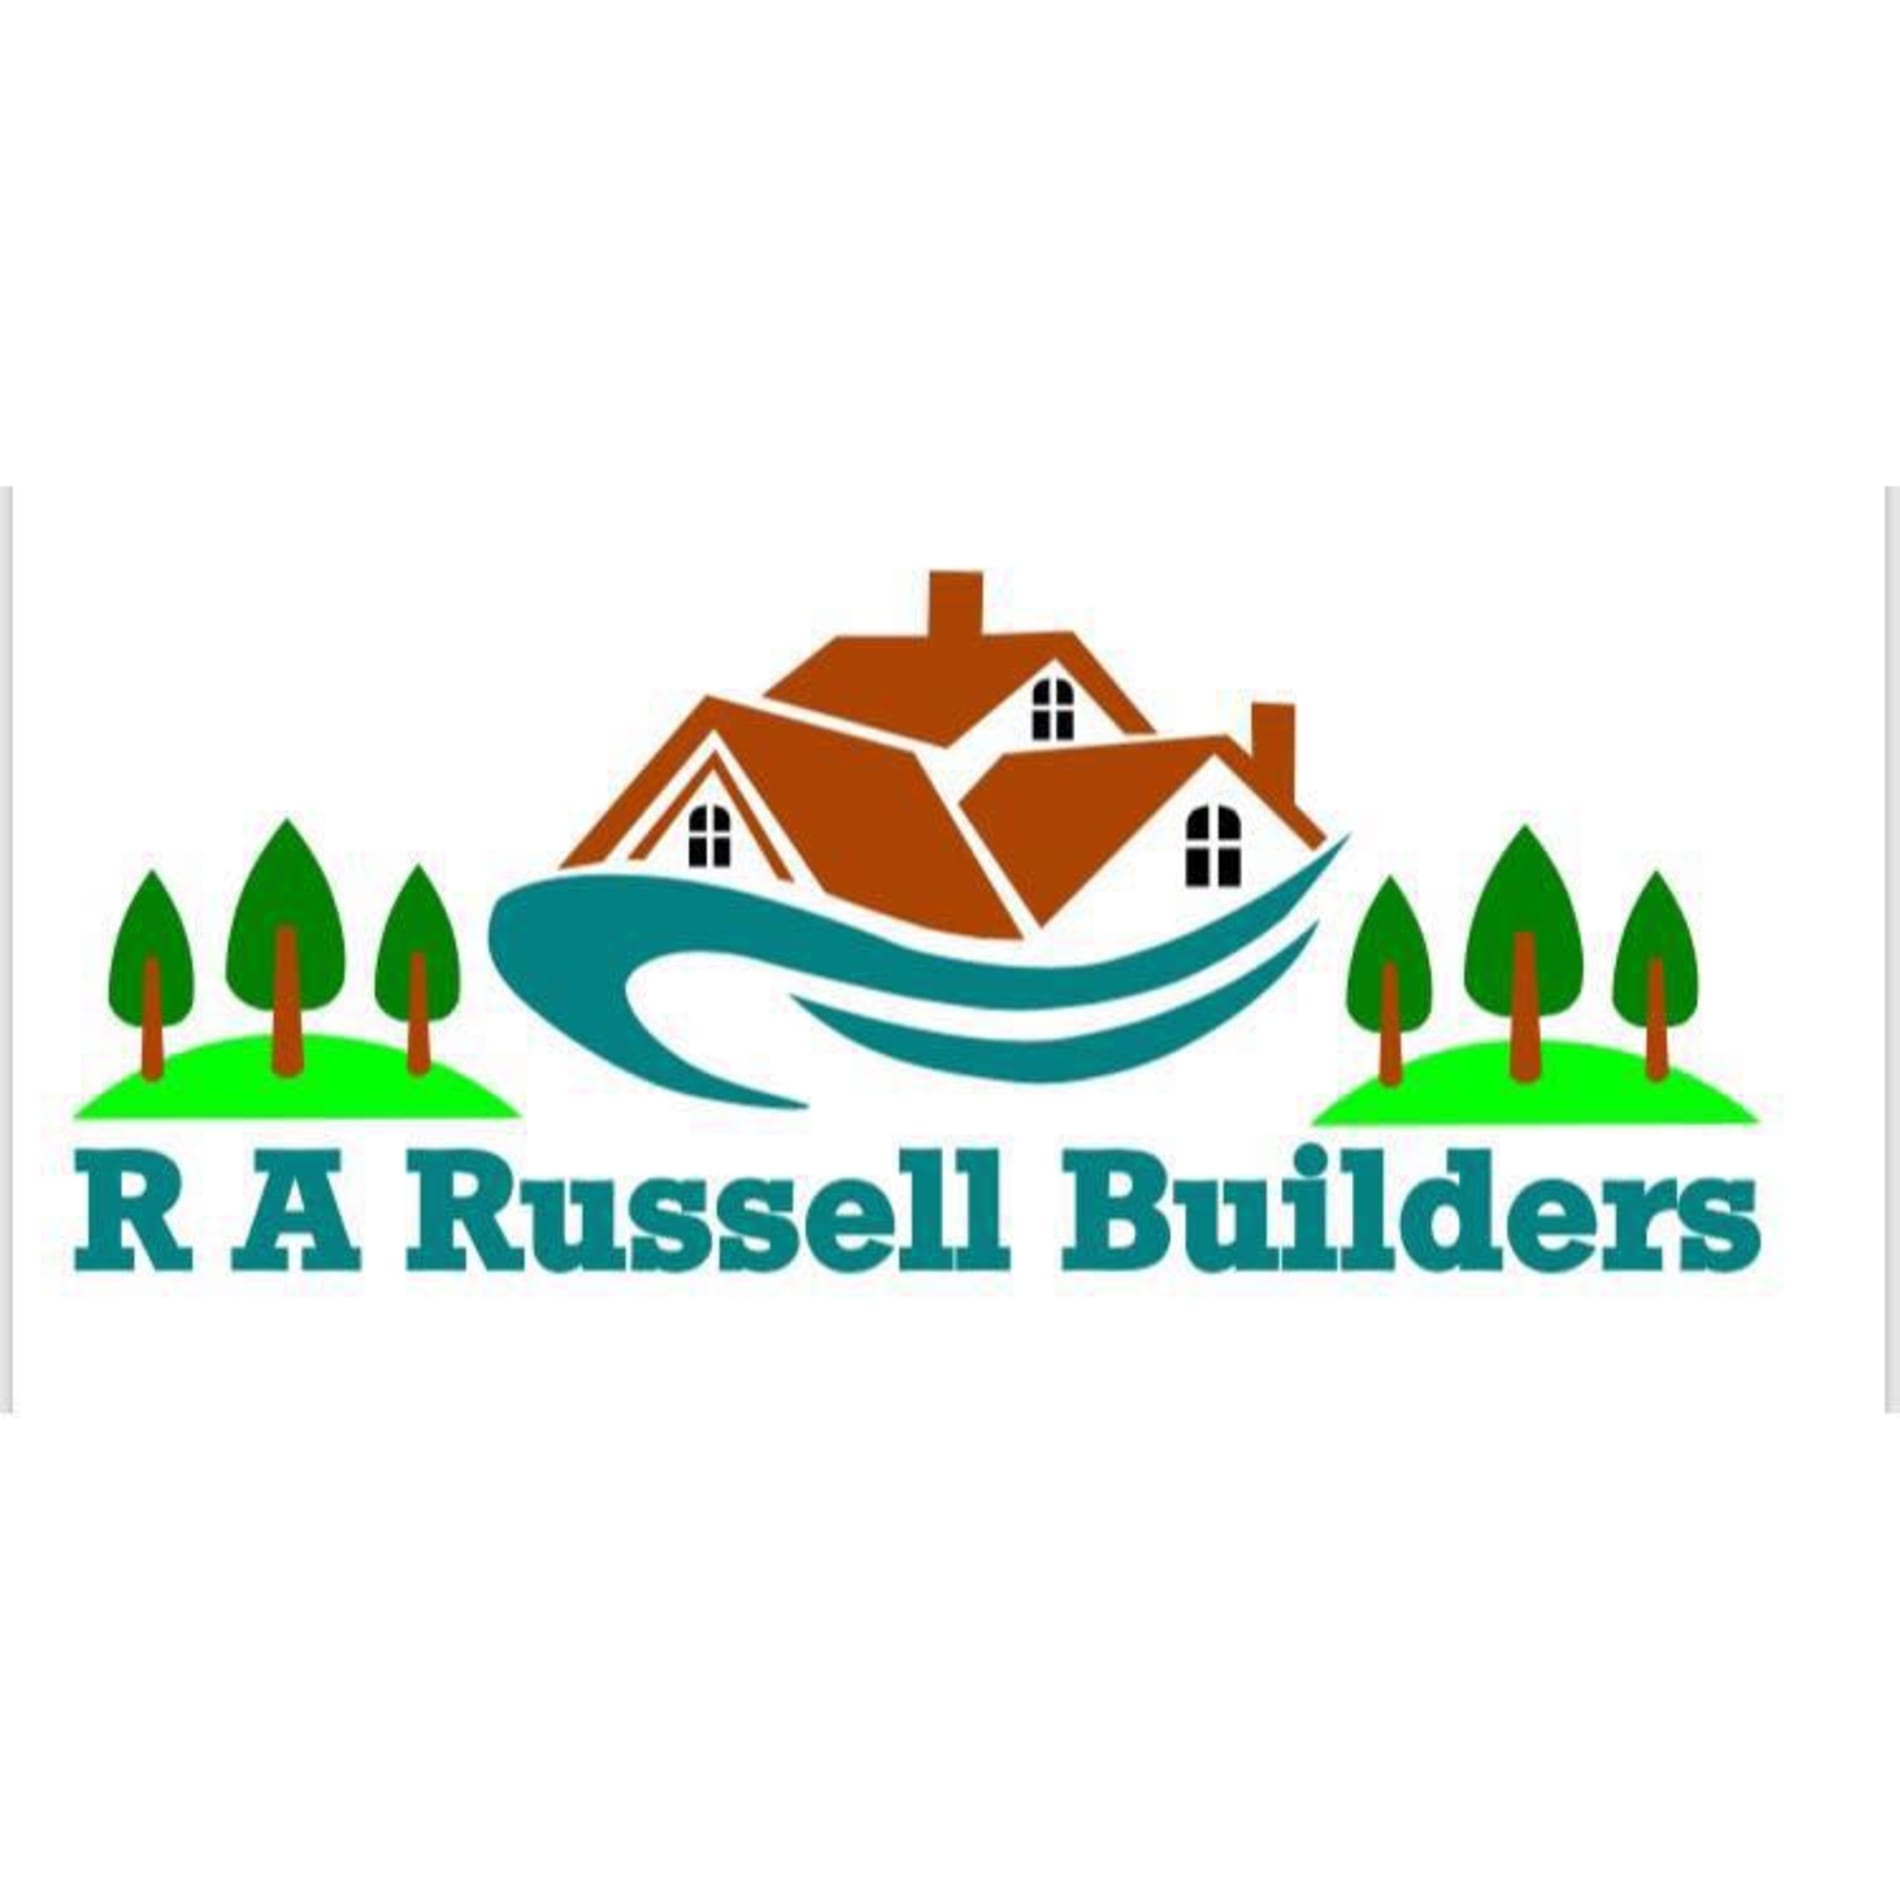 R A Russell Builders